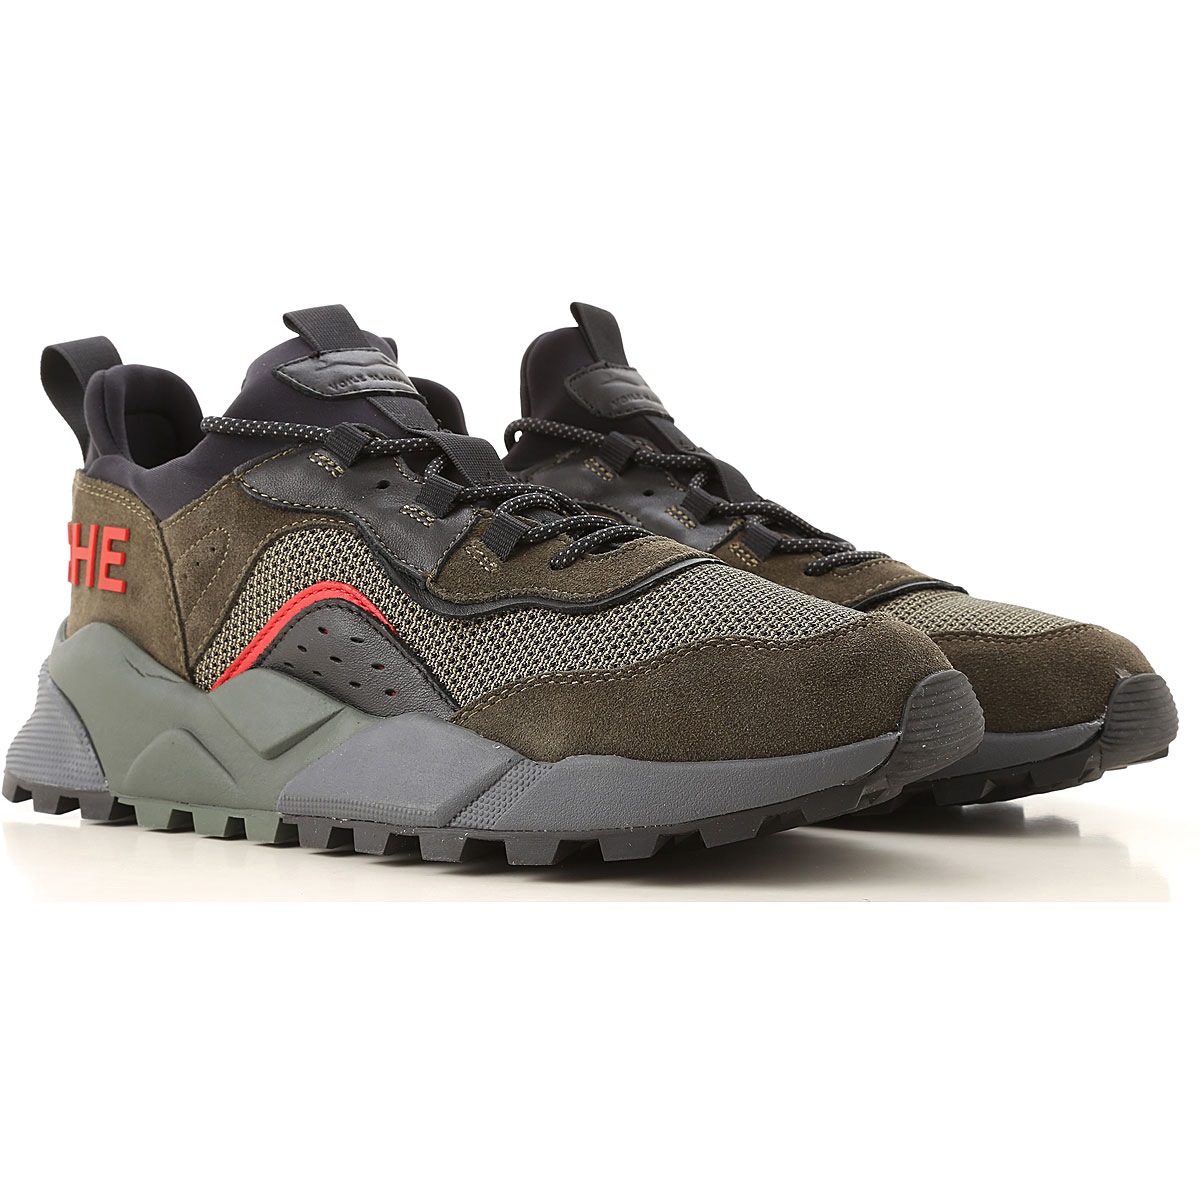 Voile Blanche Sneakers for Men On Sale, Green Olive, Textile, 2019, 10 9